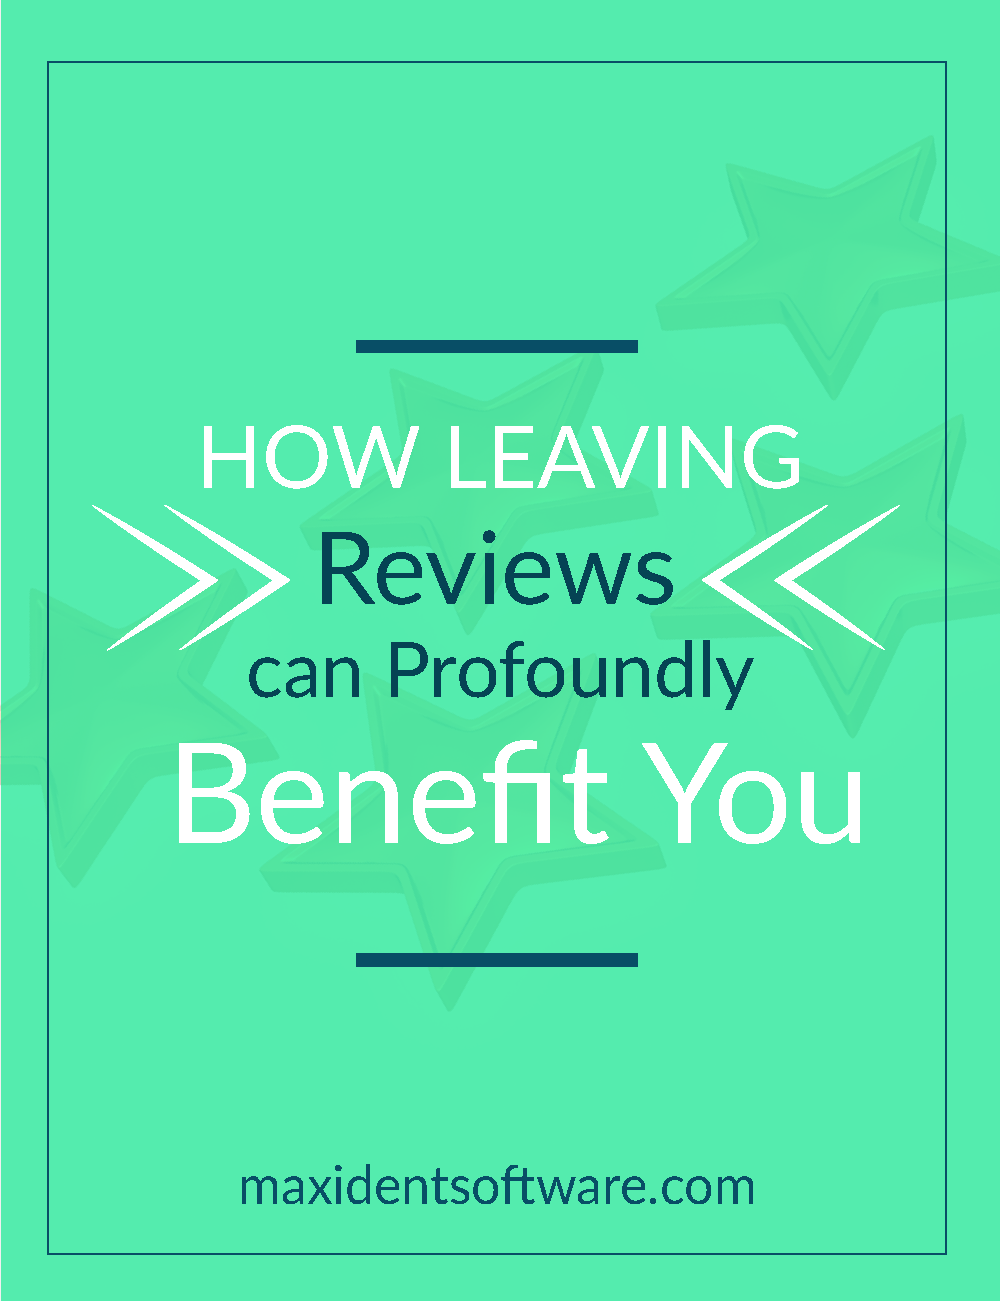 How Leaving Reviews can Profoundly Benefit You2